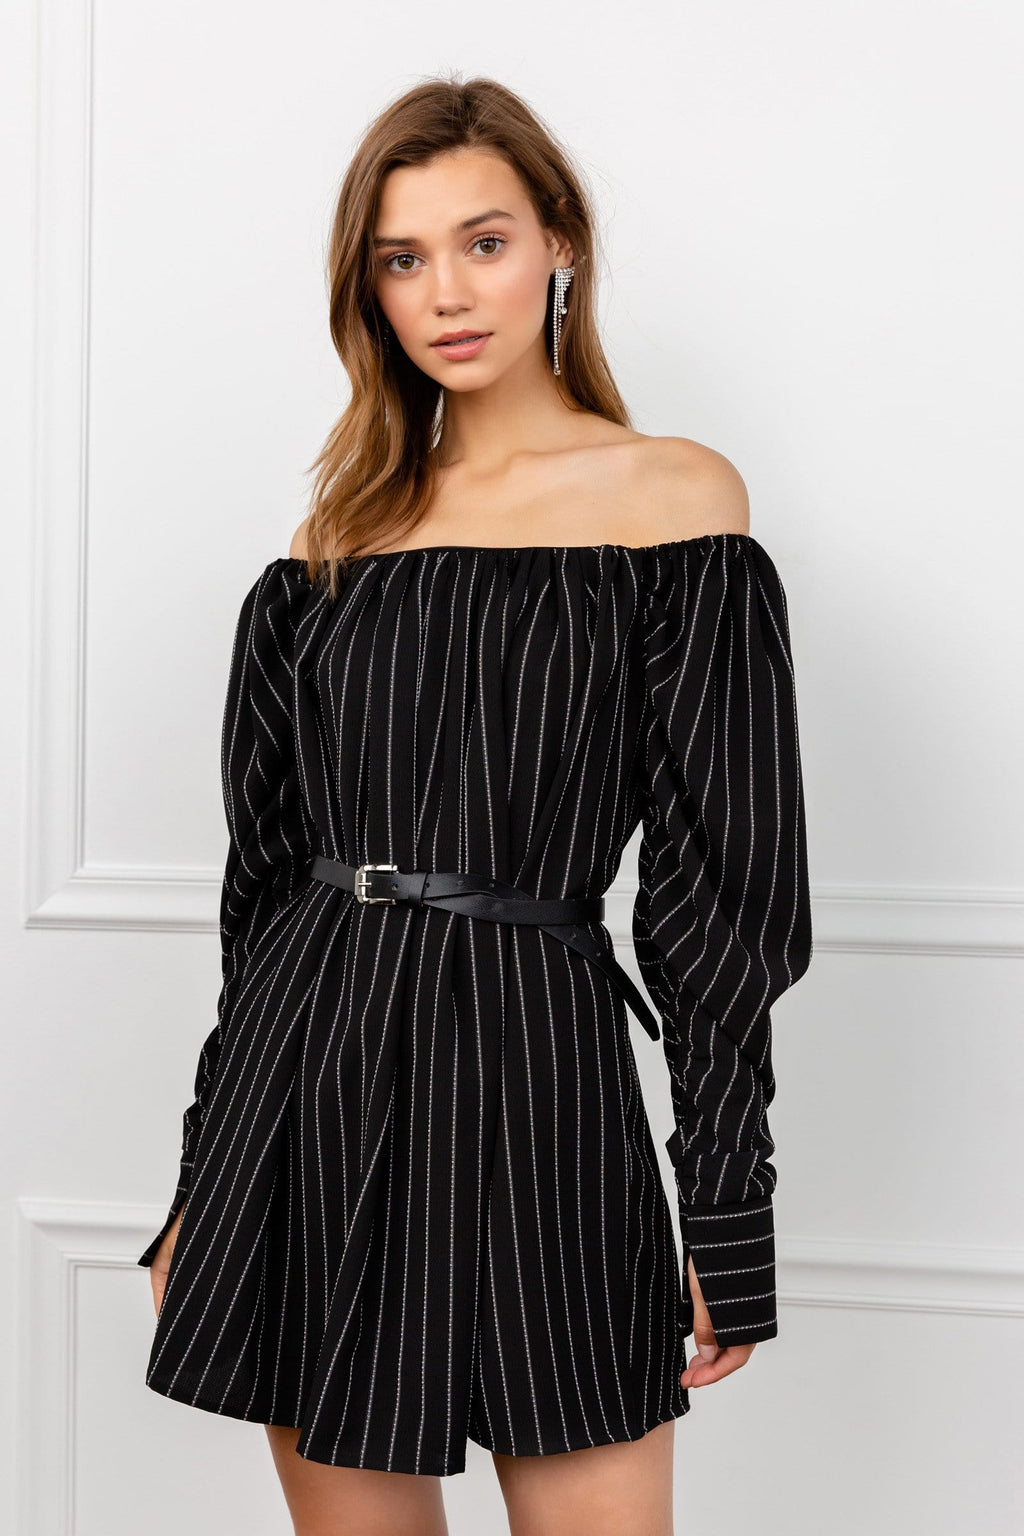 Jazzy Black Striped Dress | J.ING Women's Apparel